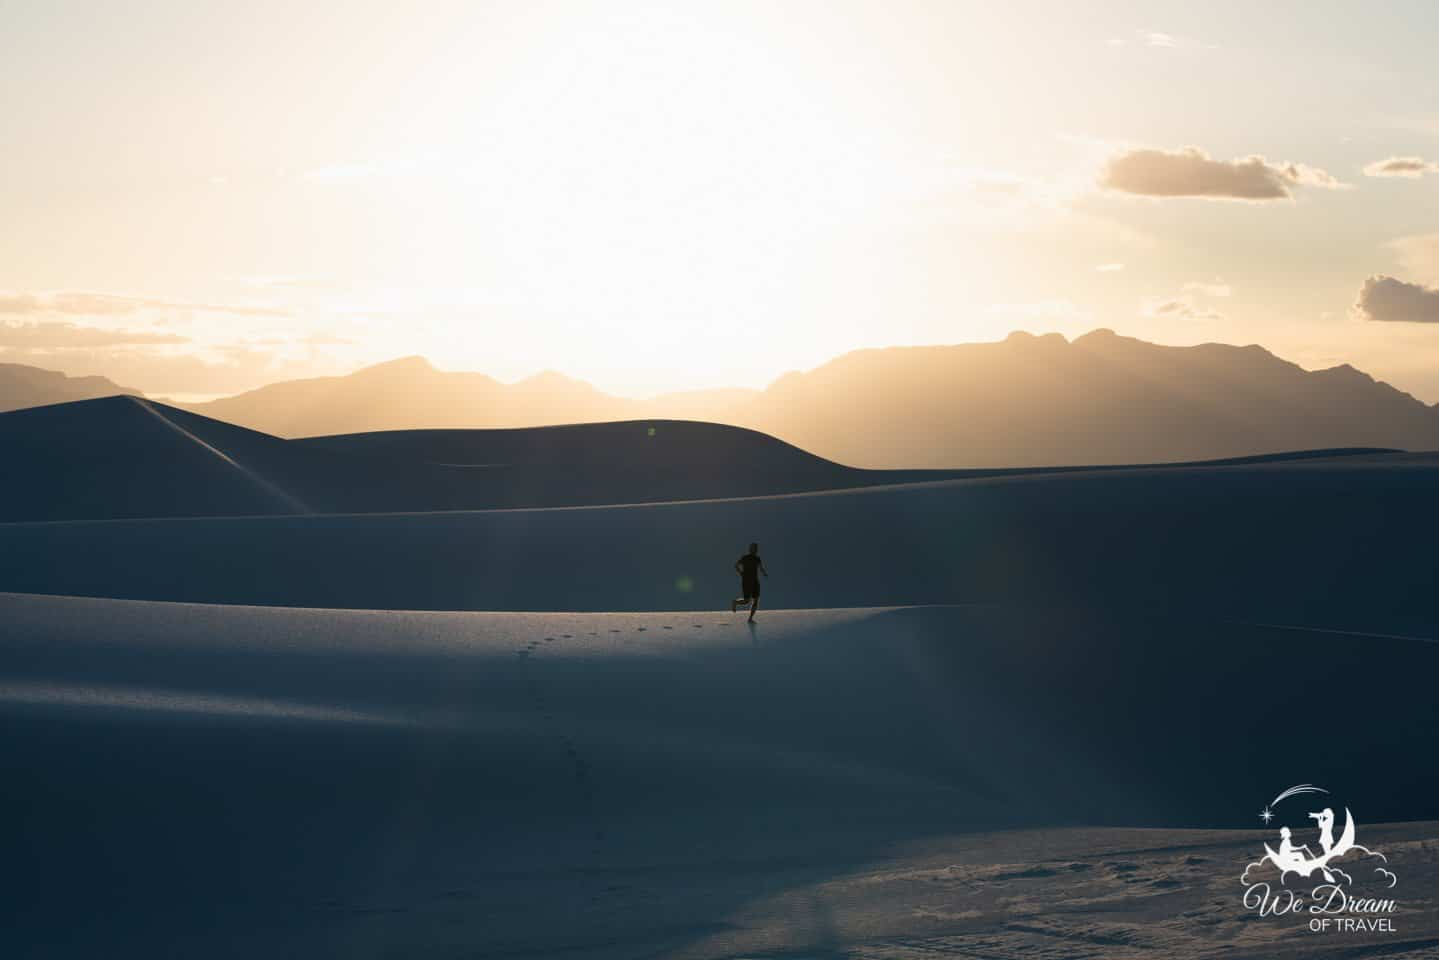 I used a tripod and intervalometer so that I could include myself as a necessary human element in this White Sands golden hour picture.